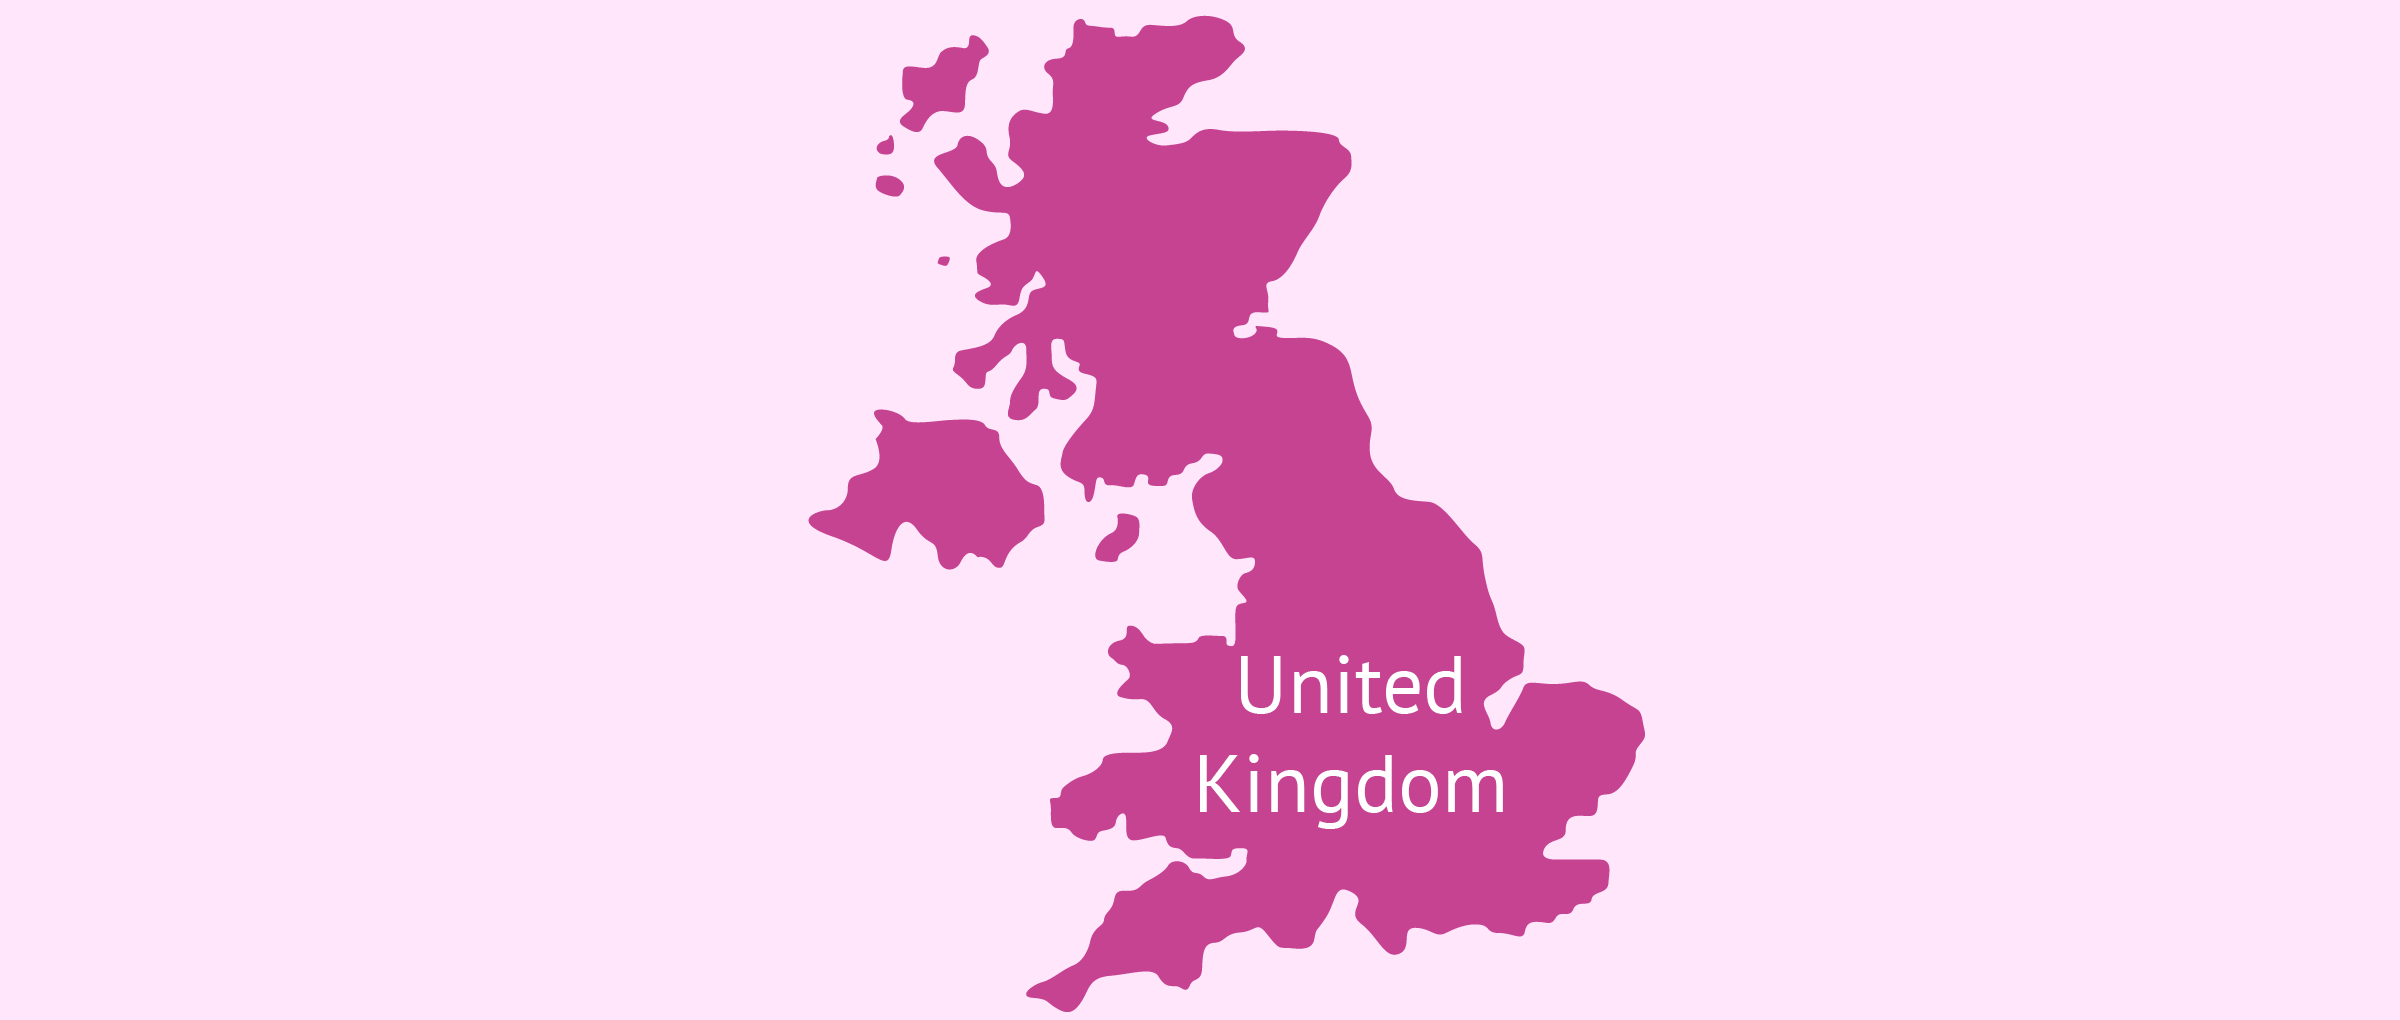 How Does Surrogacy Work in the UK? - Law, Cost & FAQs